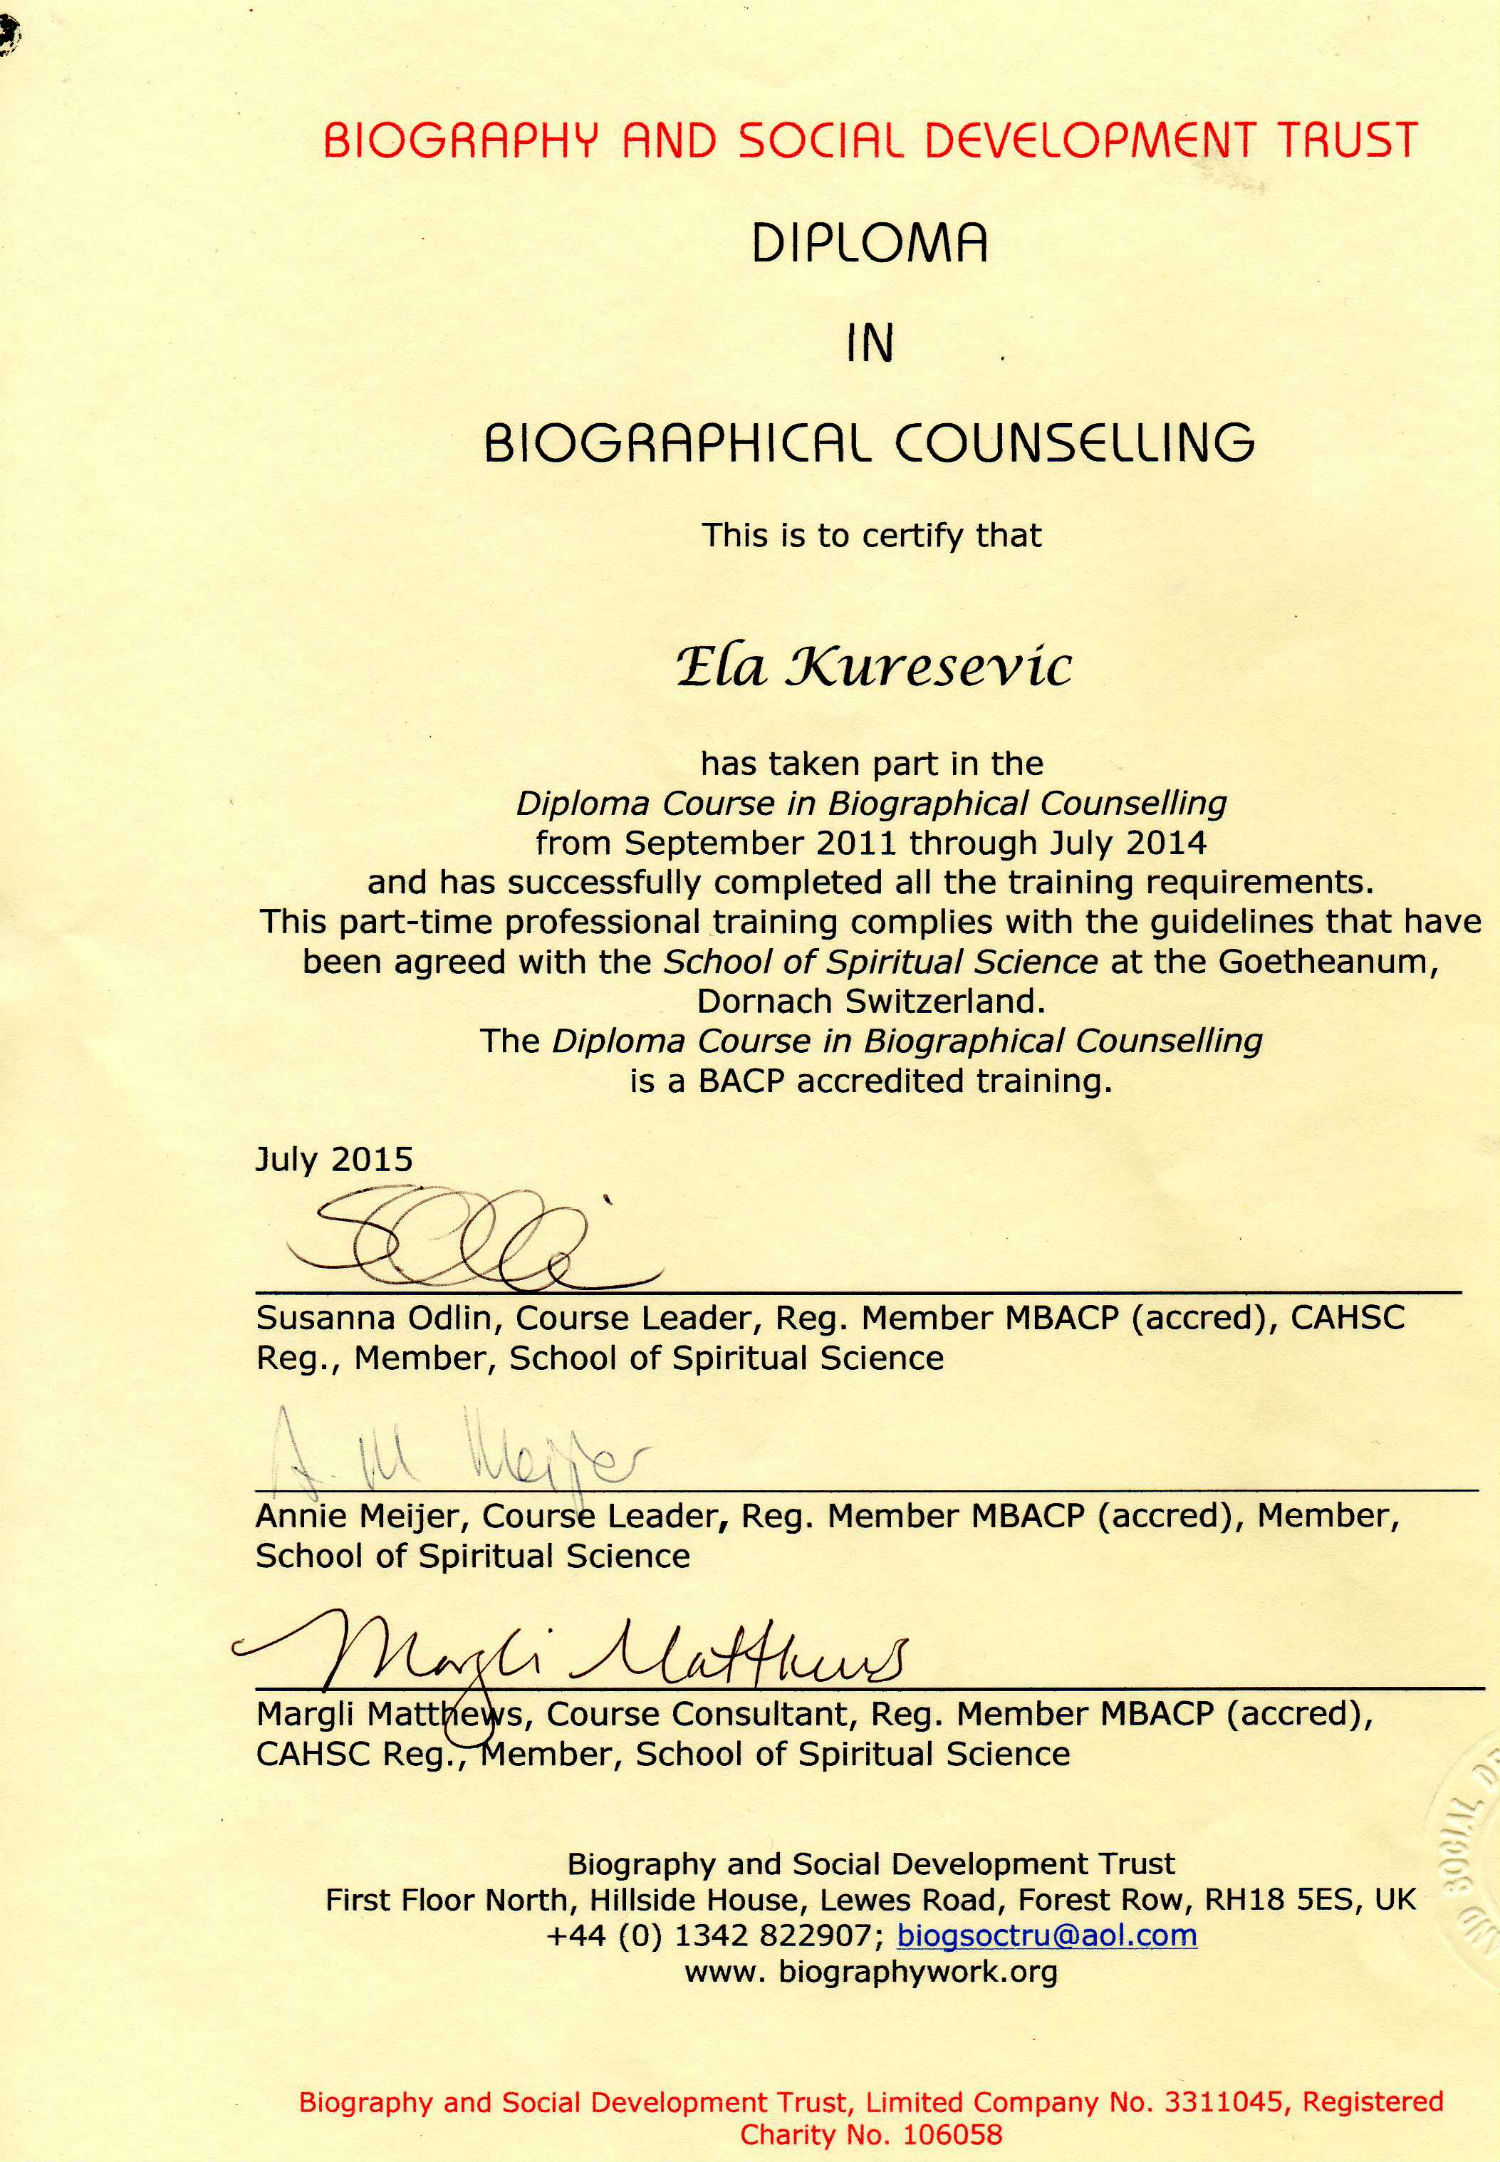 biographical-counselling-diploma.jpg